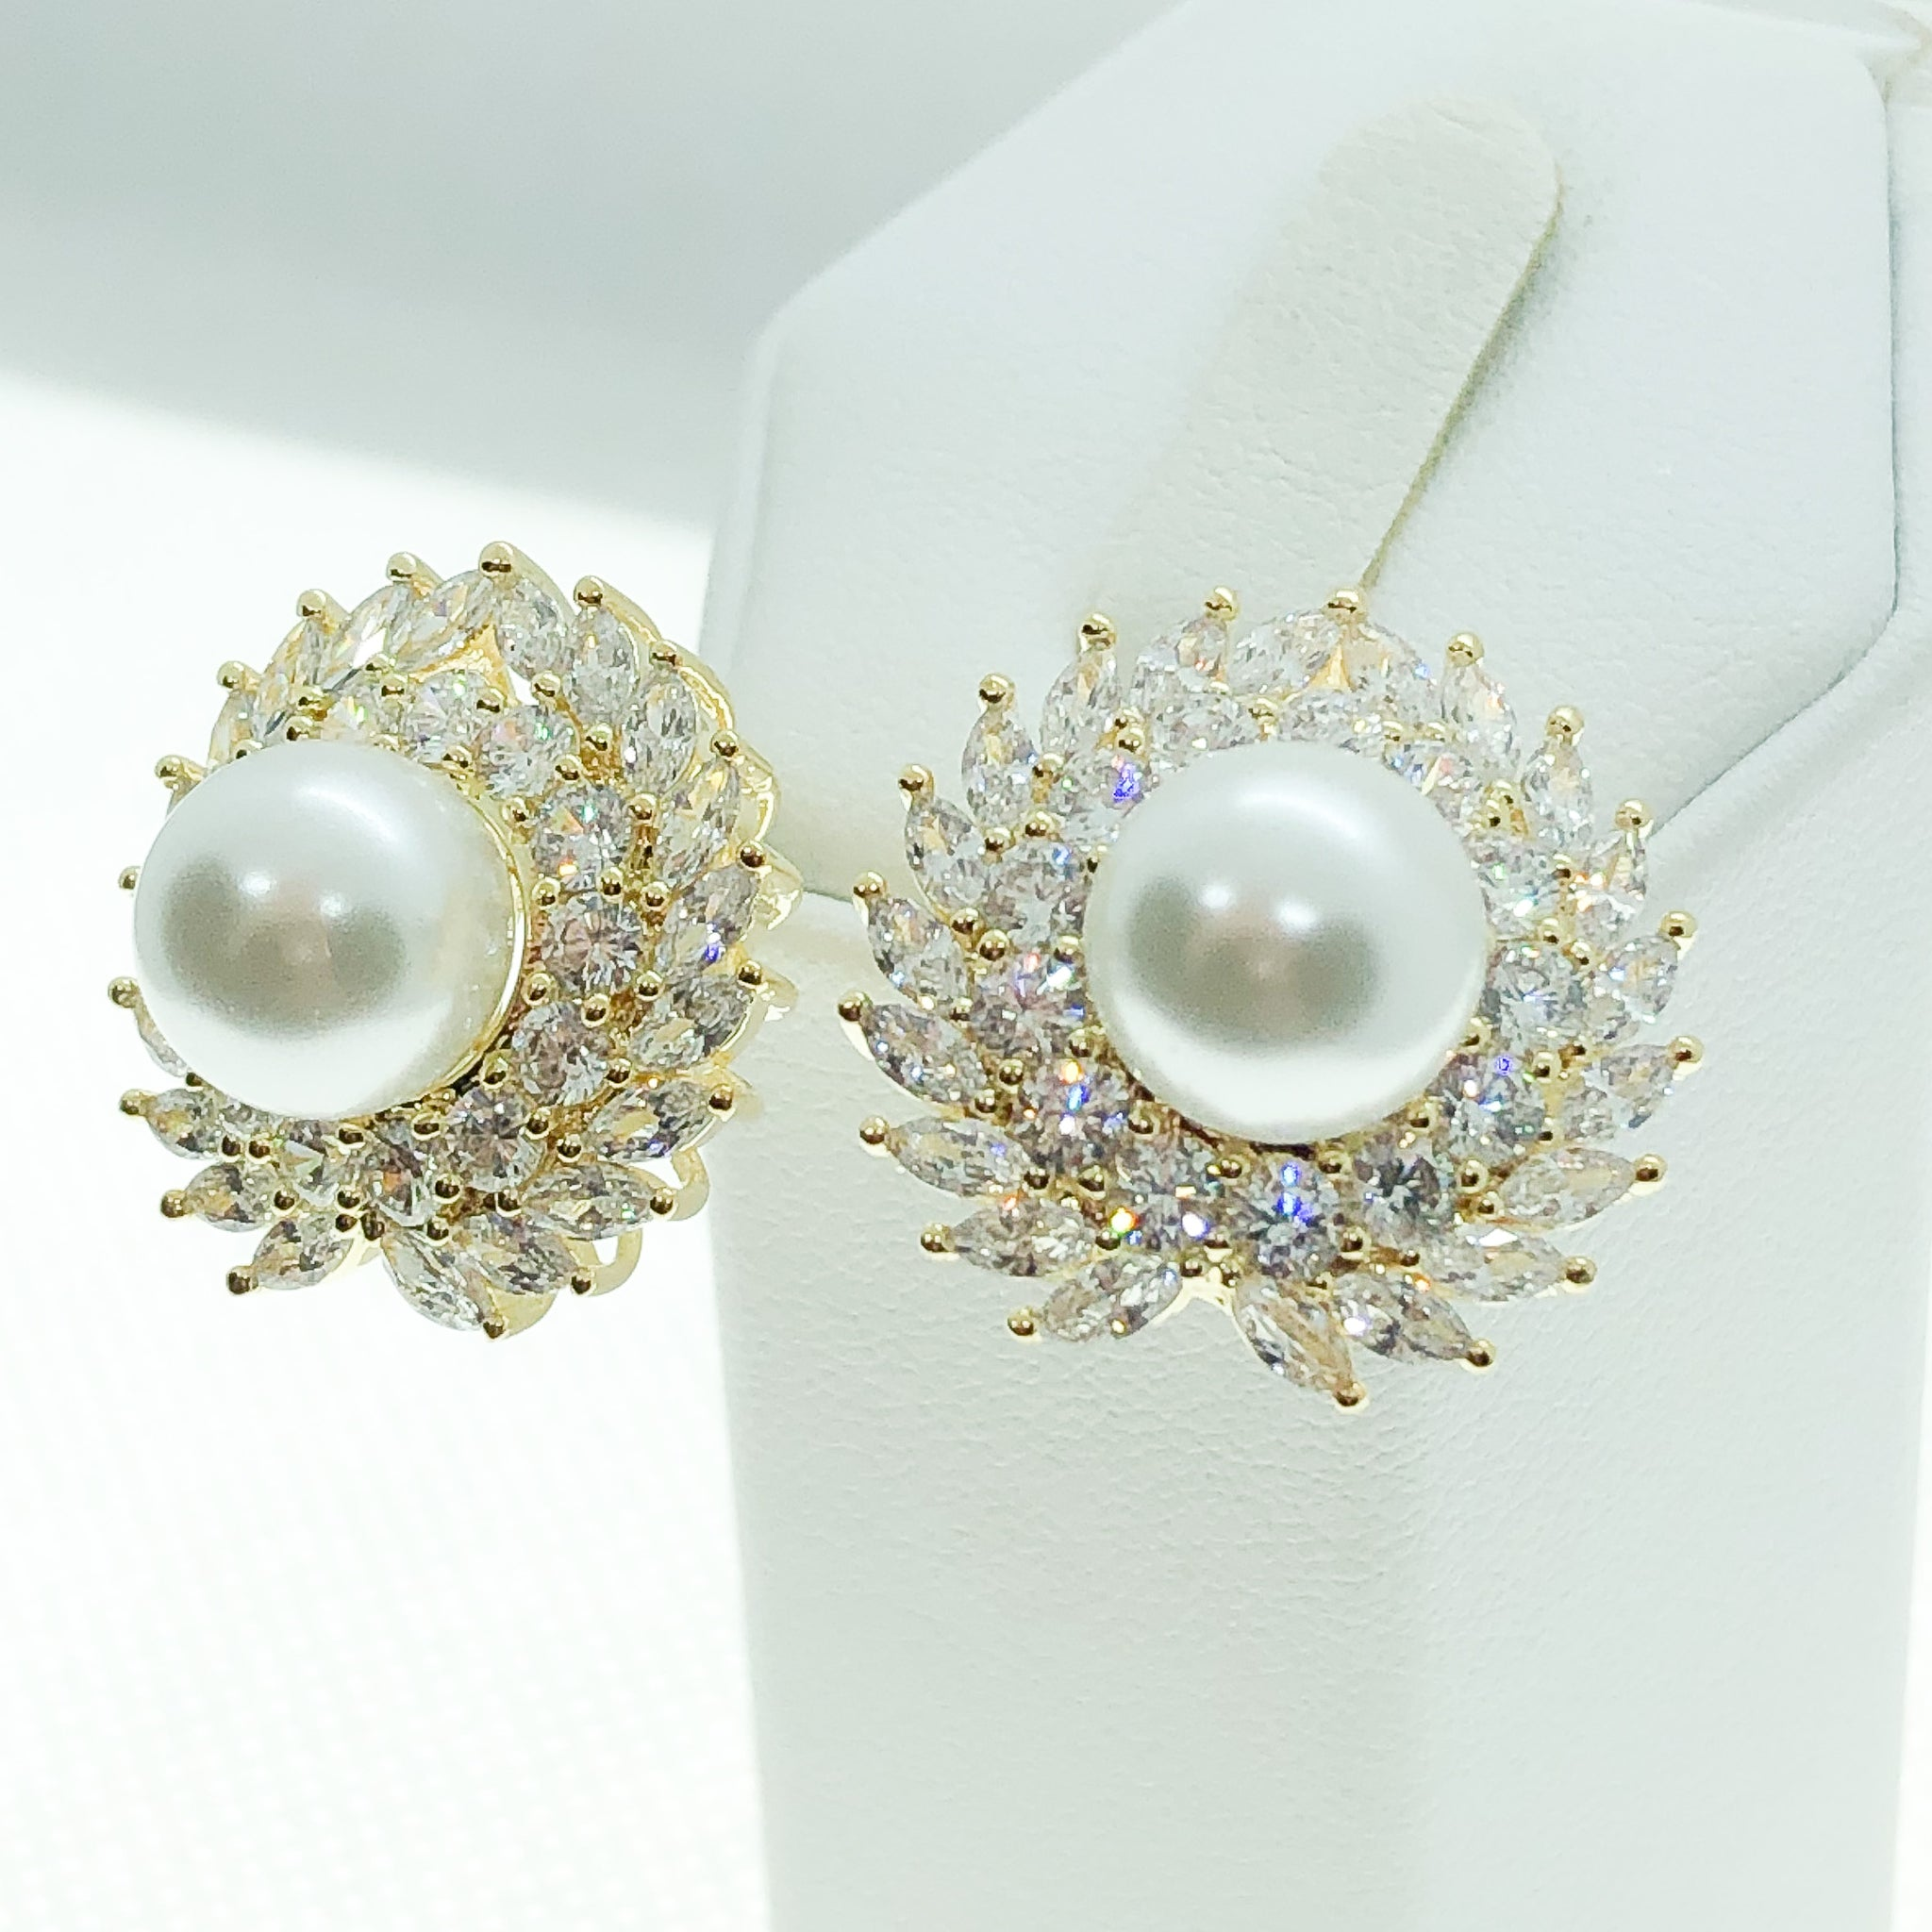 ID: E4771 Women Fashion Jewelry 18K Yellow Gold GF Fresh Pearl Stud Earrings With Diamonique Accent Lady Engagement Wedding Gift